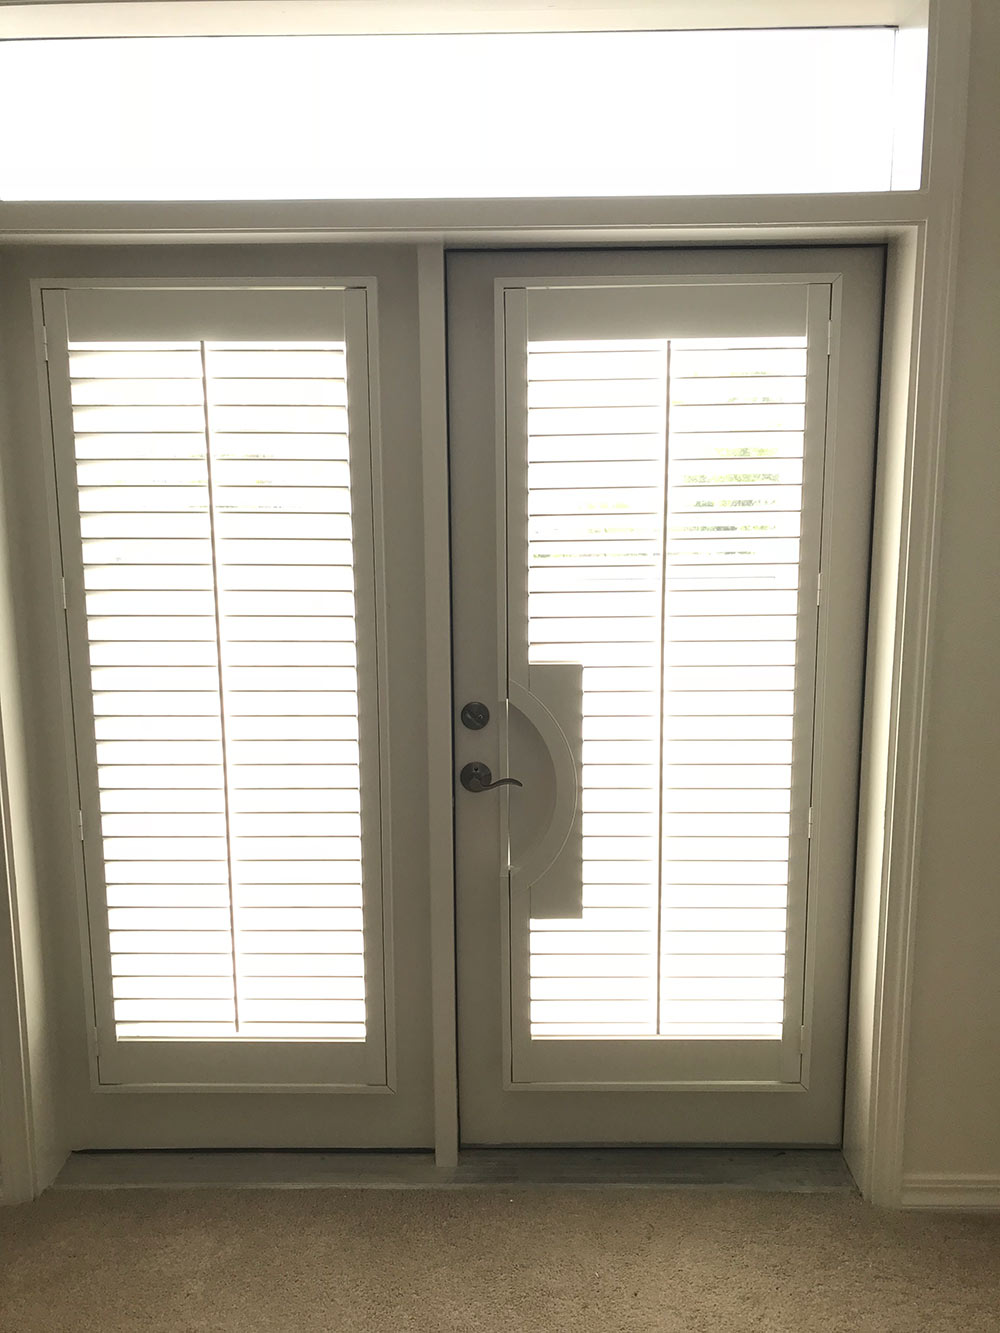 slatted window coverings on french doors